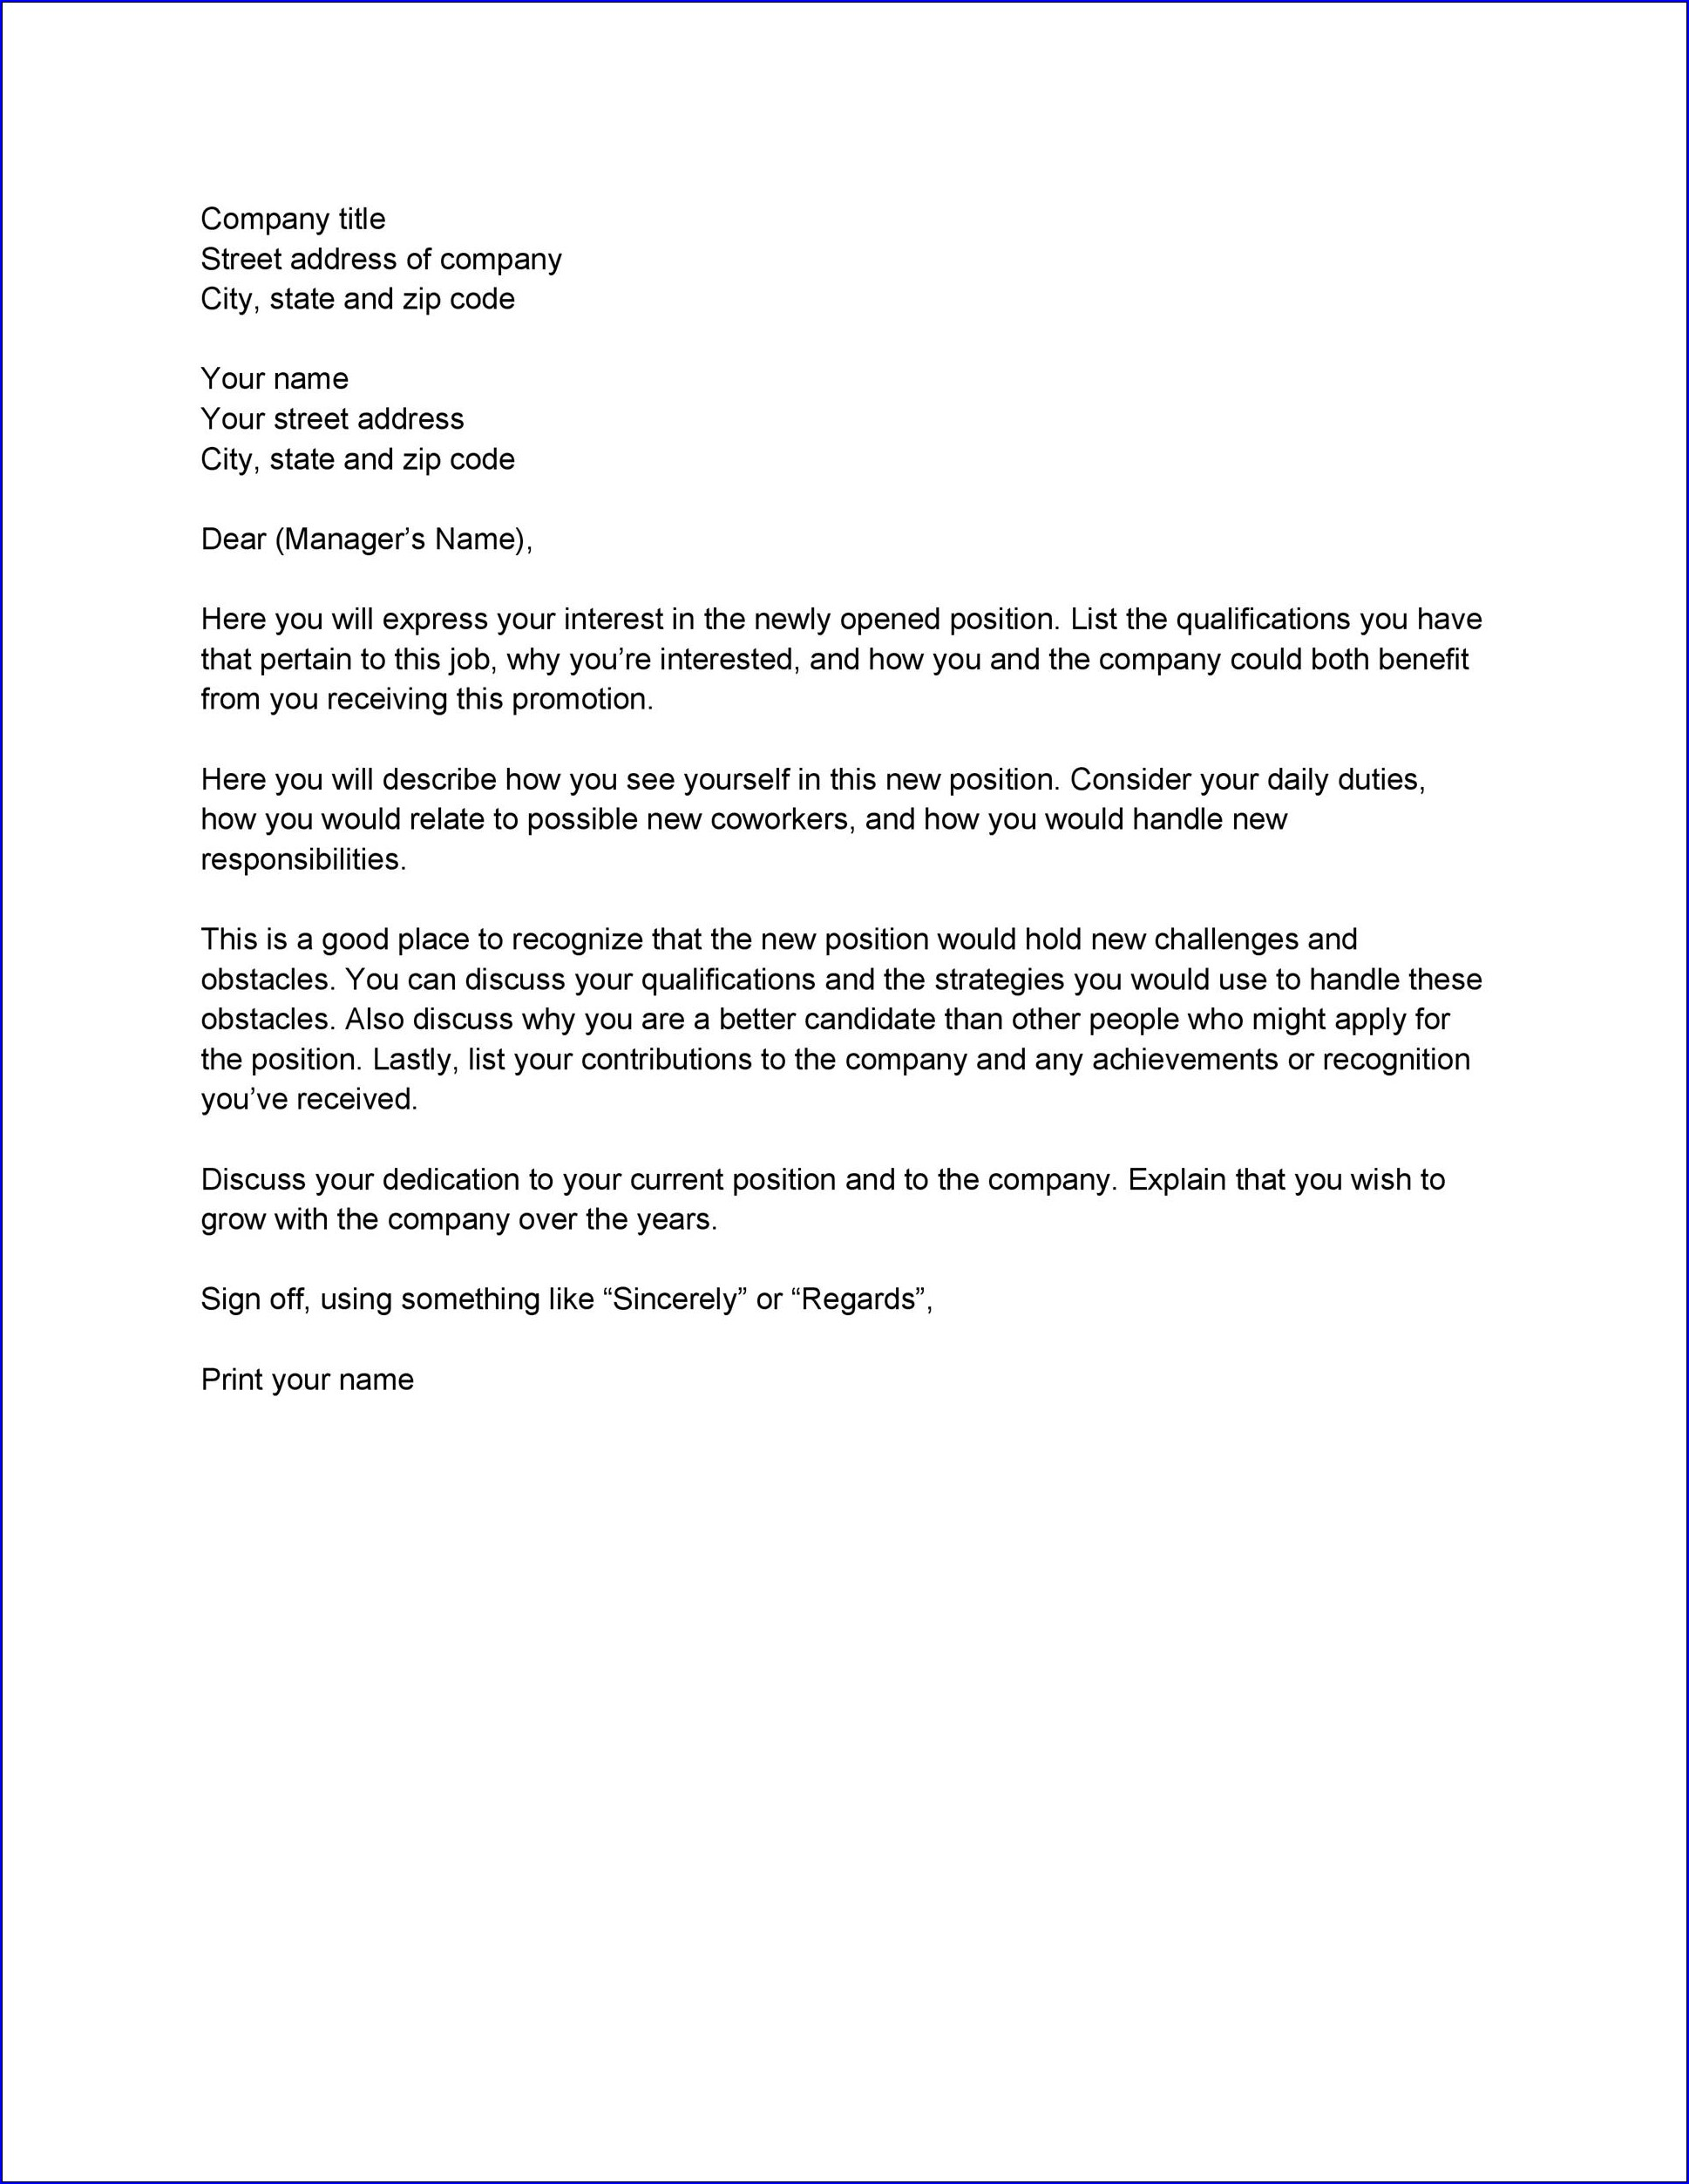 Example of Letter of Interest Template for a Job